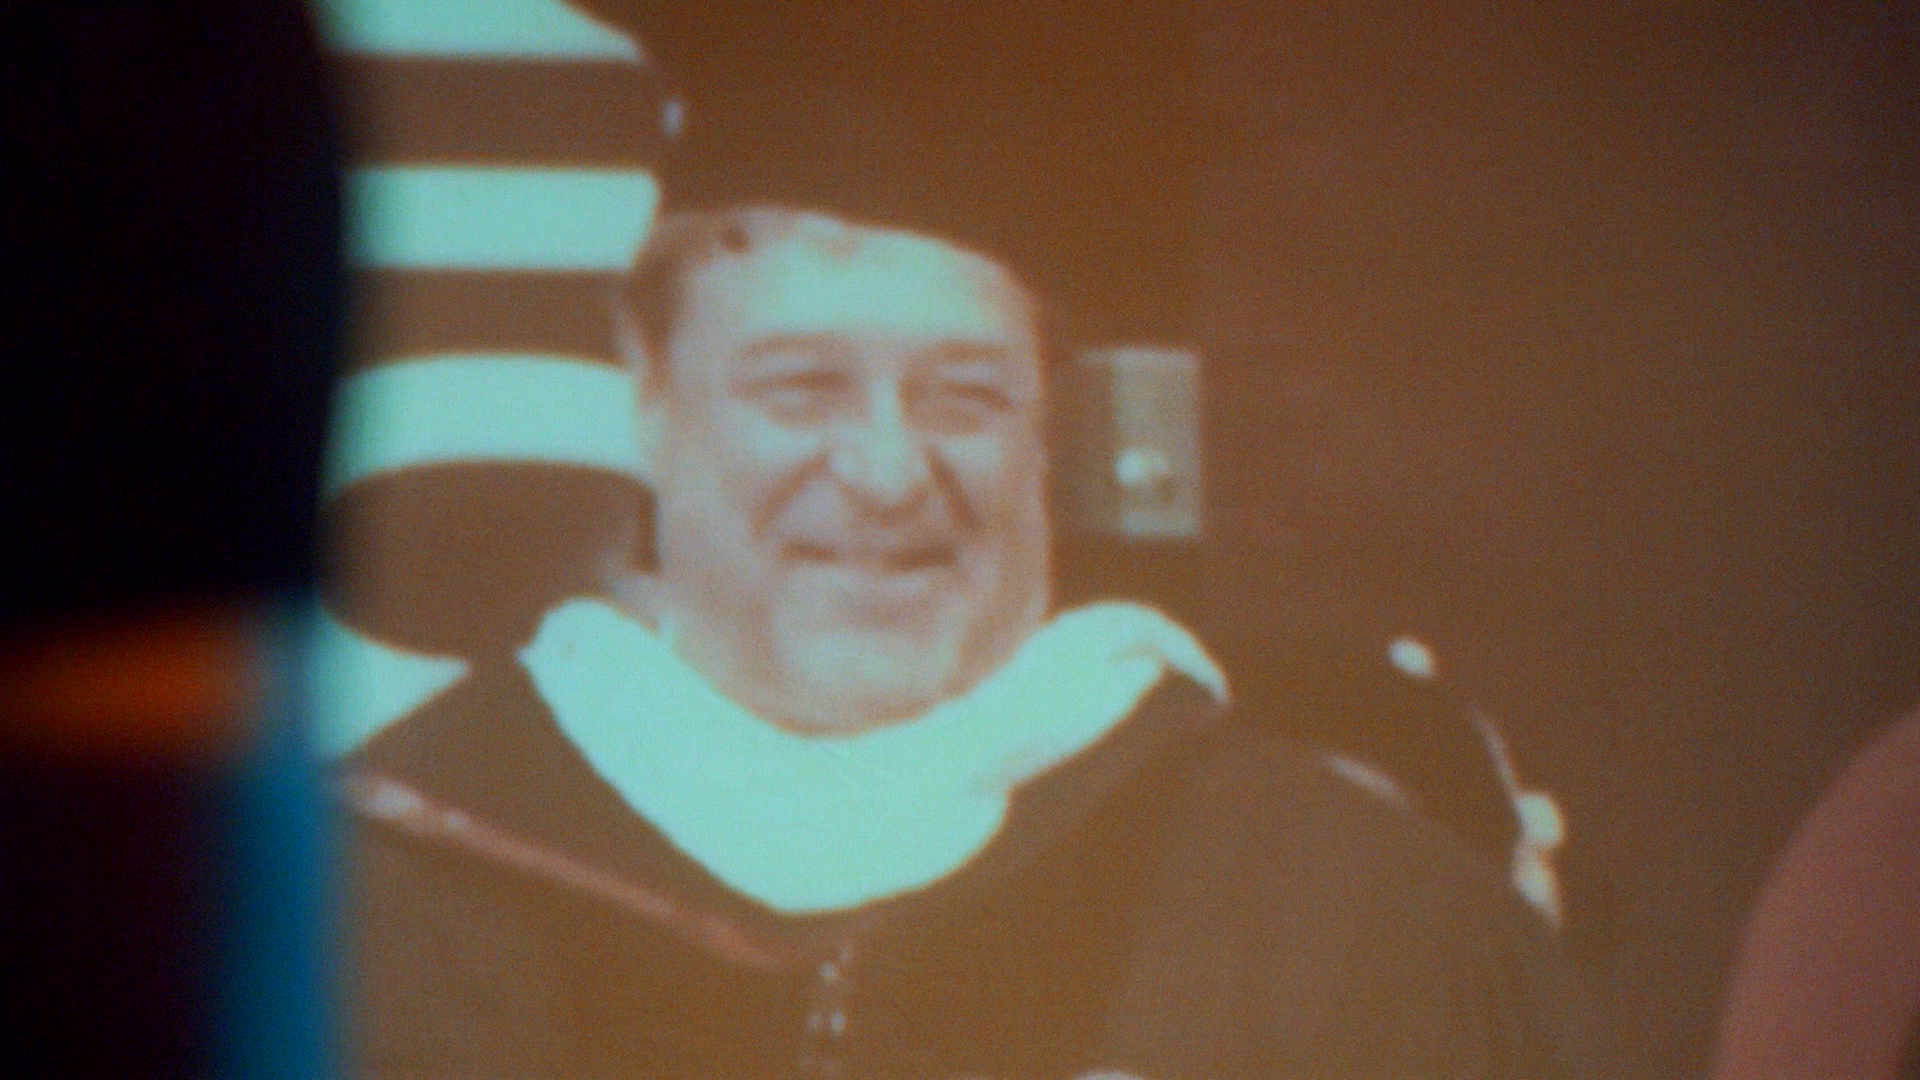 Projection of John Goodman's 2013 speech at Missouri State University